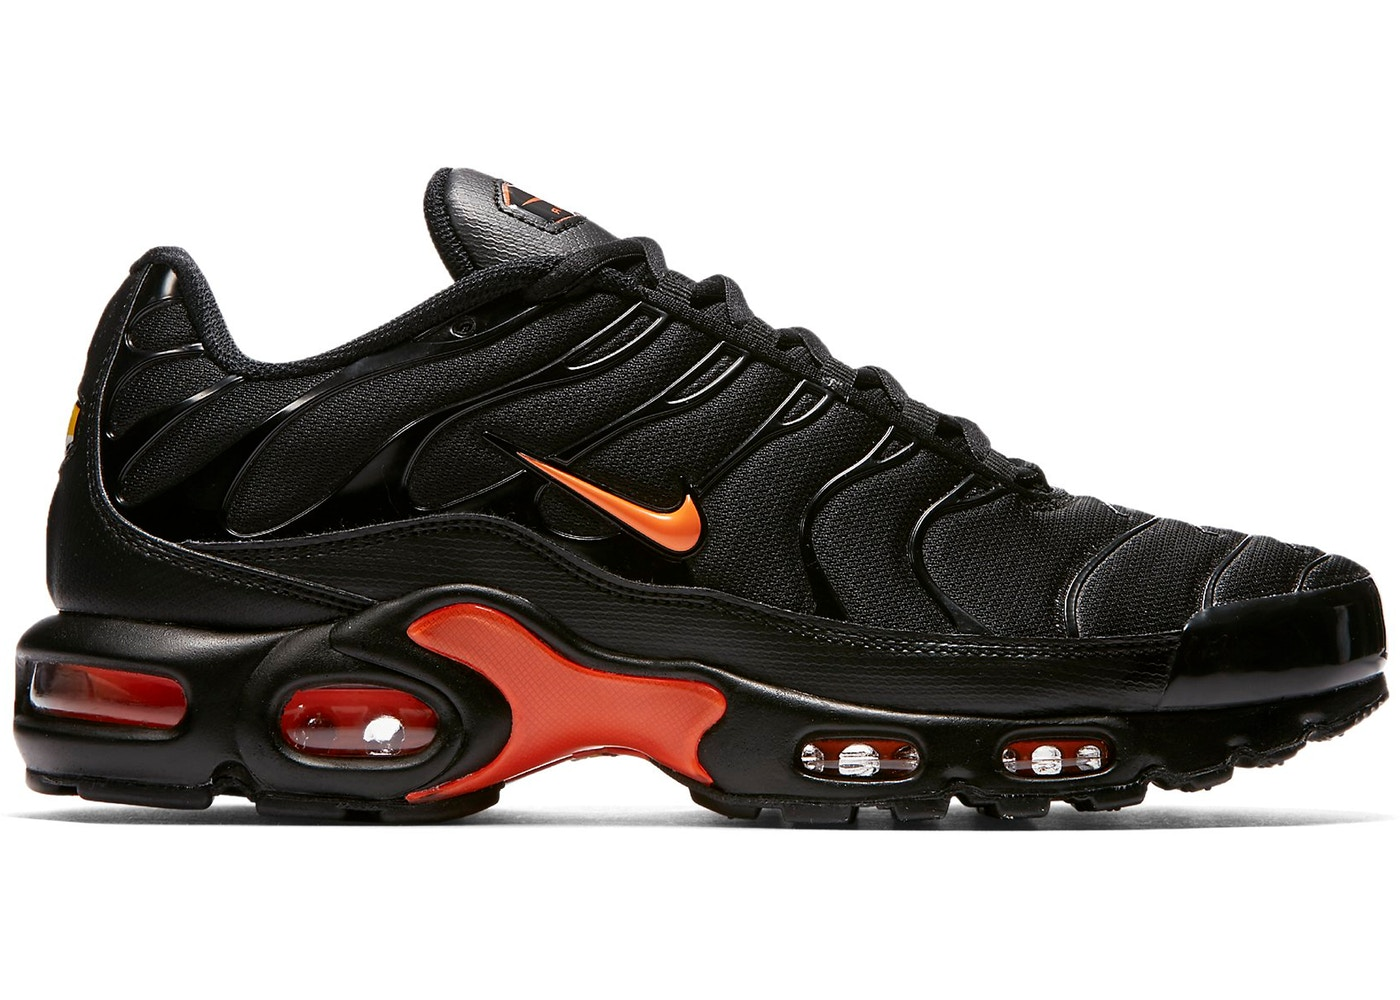 info for 187ef e4261 Air Max Plus Black Orange